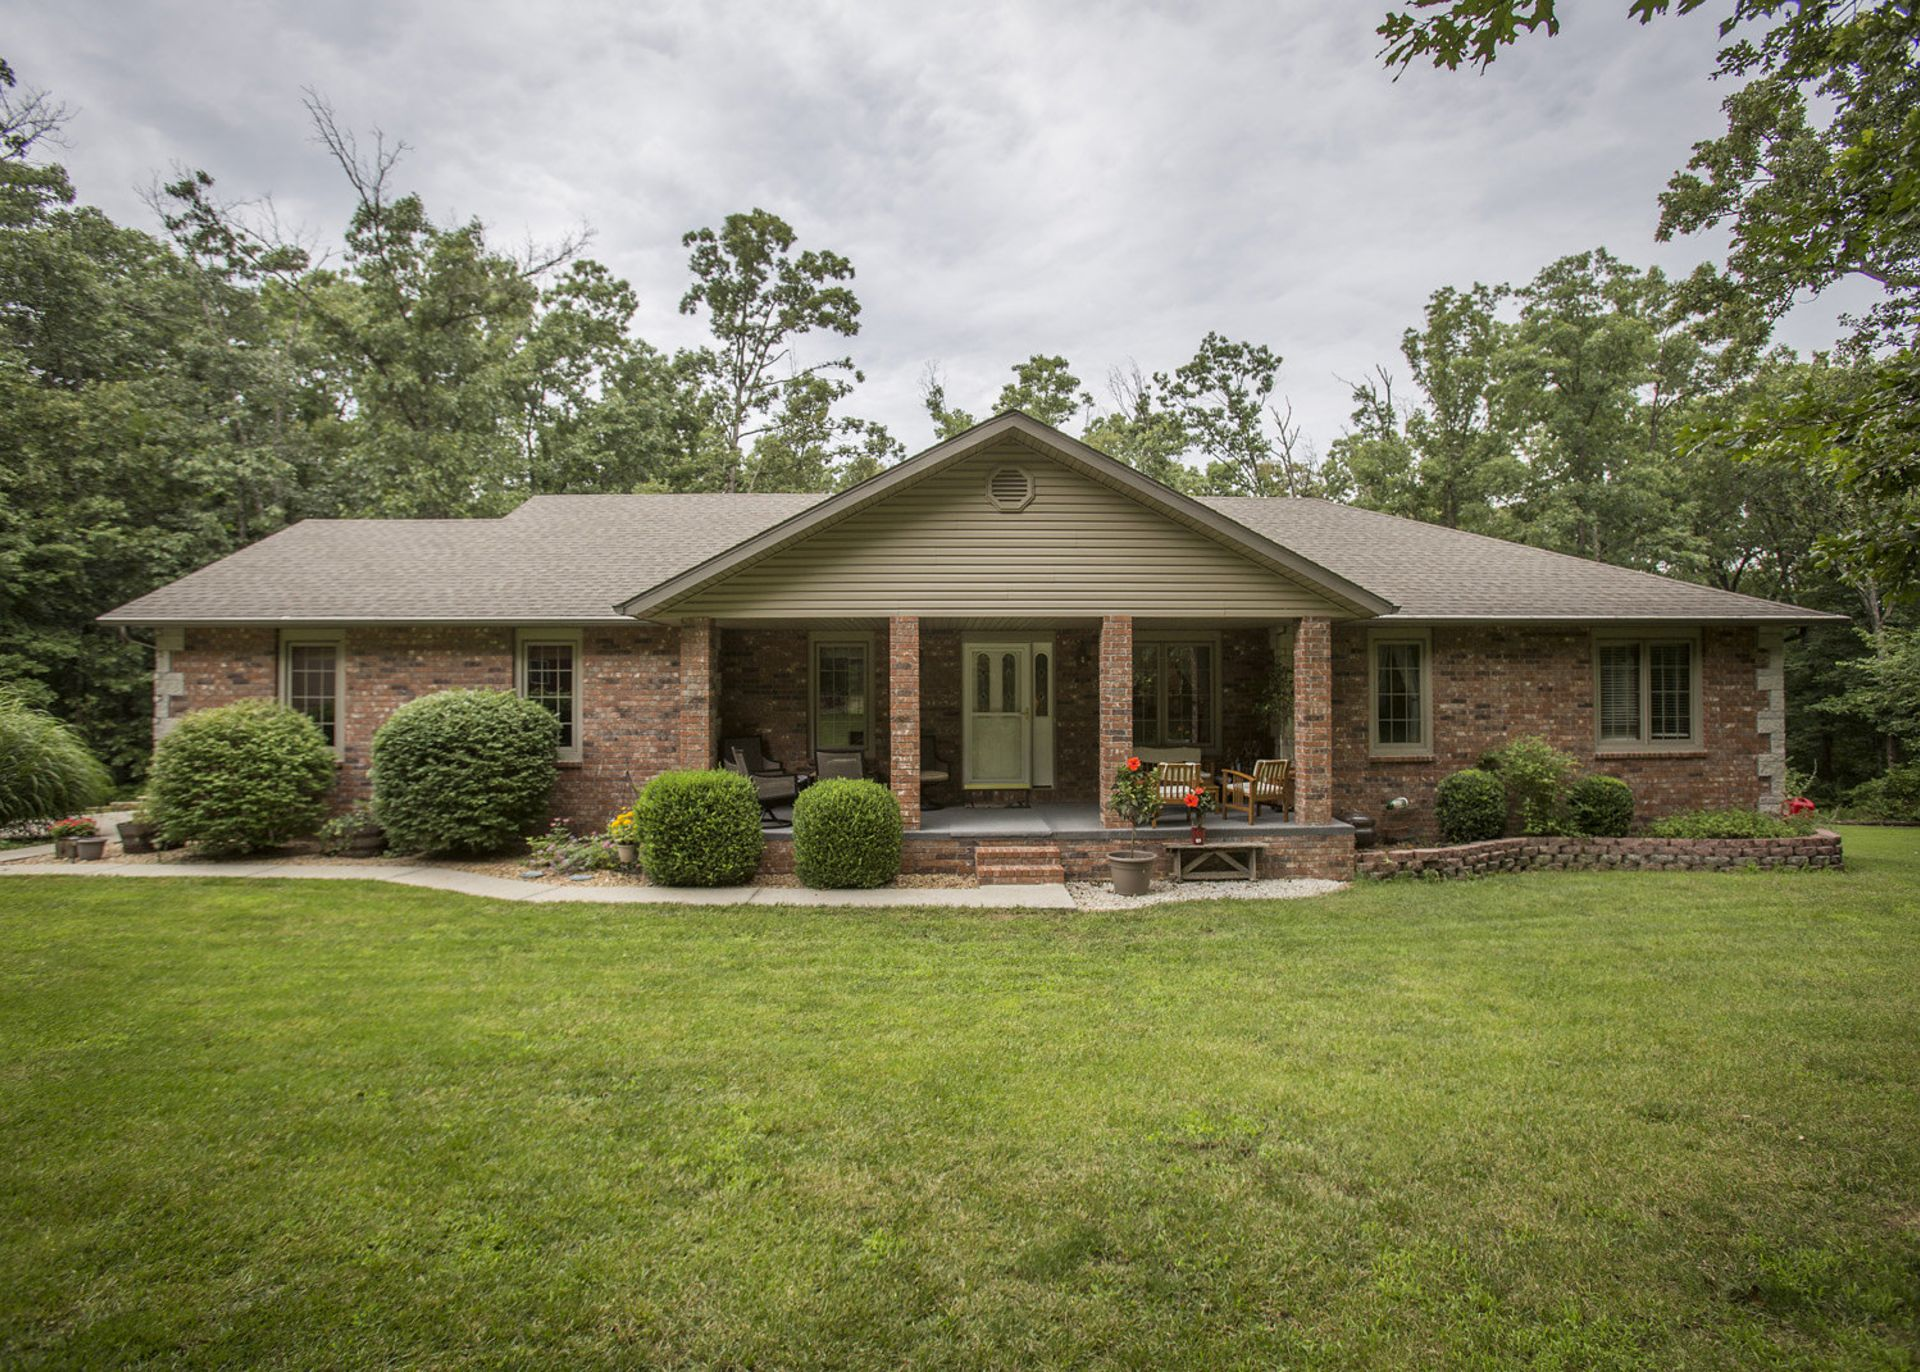 New Listing in Fordland, MO! 5 Bedroom House on 3 1/2 Acres!